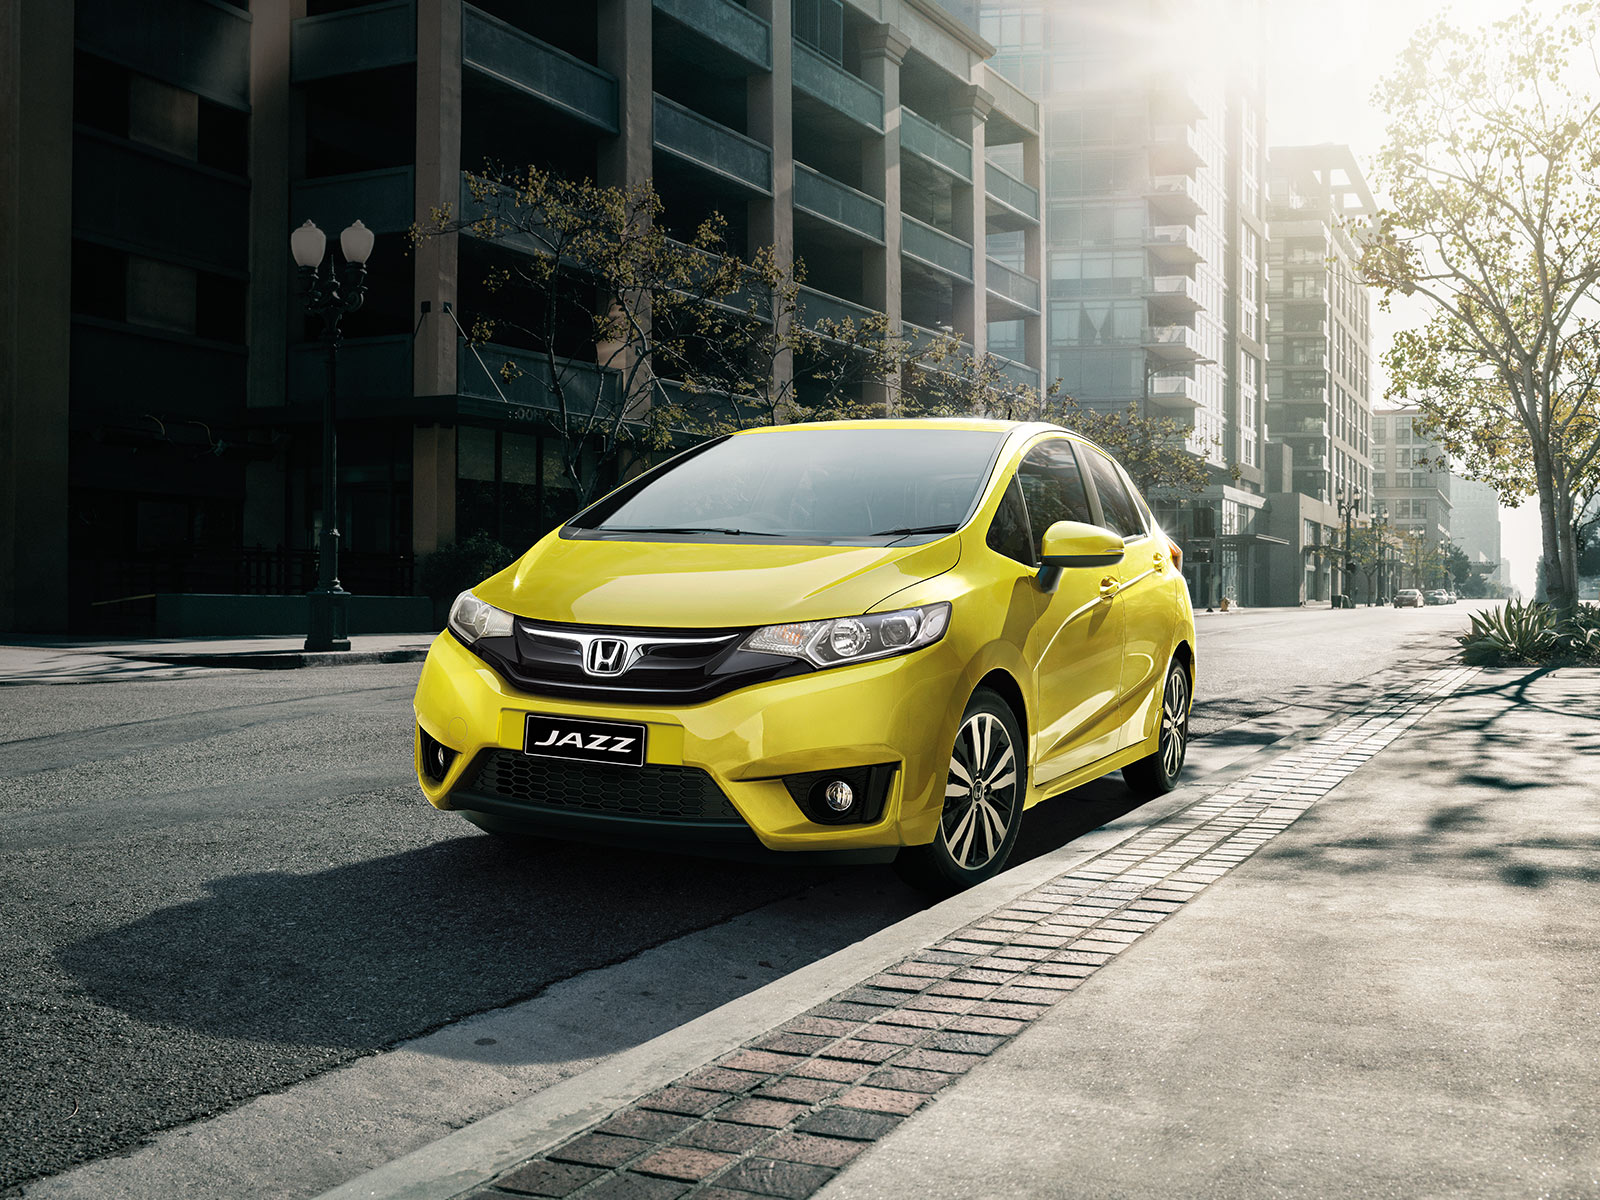 New Honda Jazz launching in March 2015